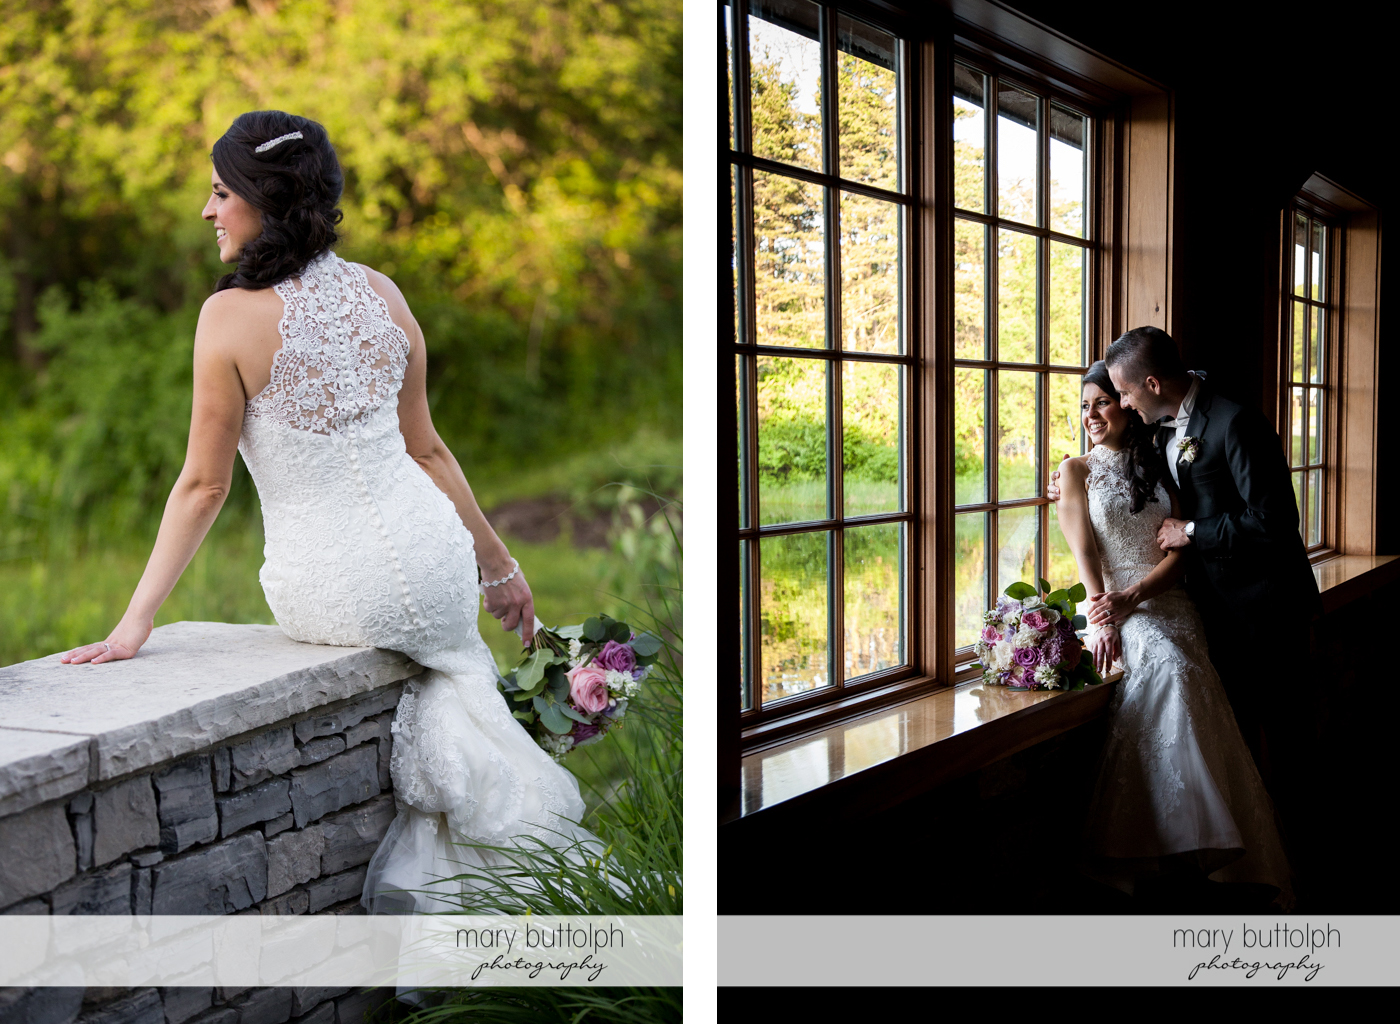 Two shots of the bride sitting on a stone wall and near the window at the Lodge at Welch Allyn Wedding